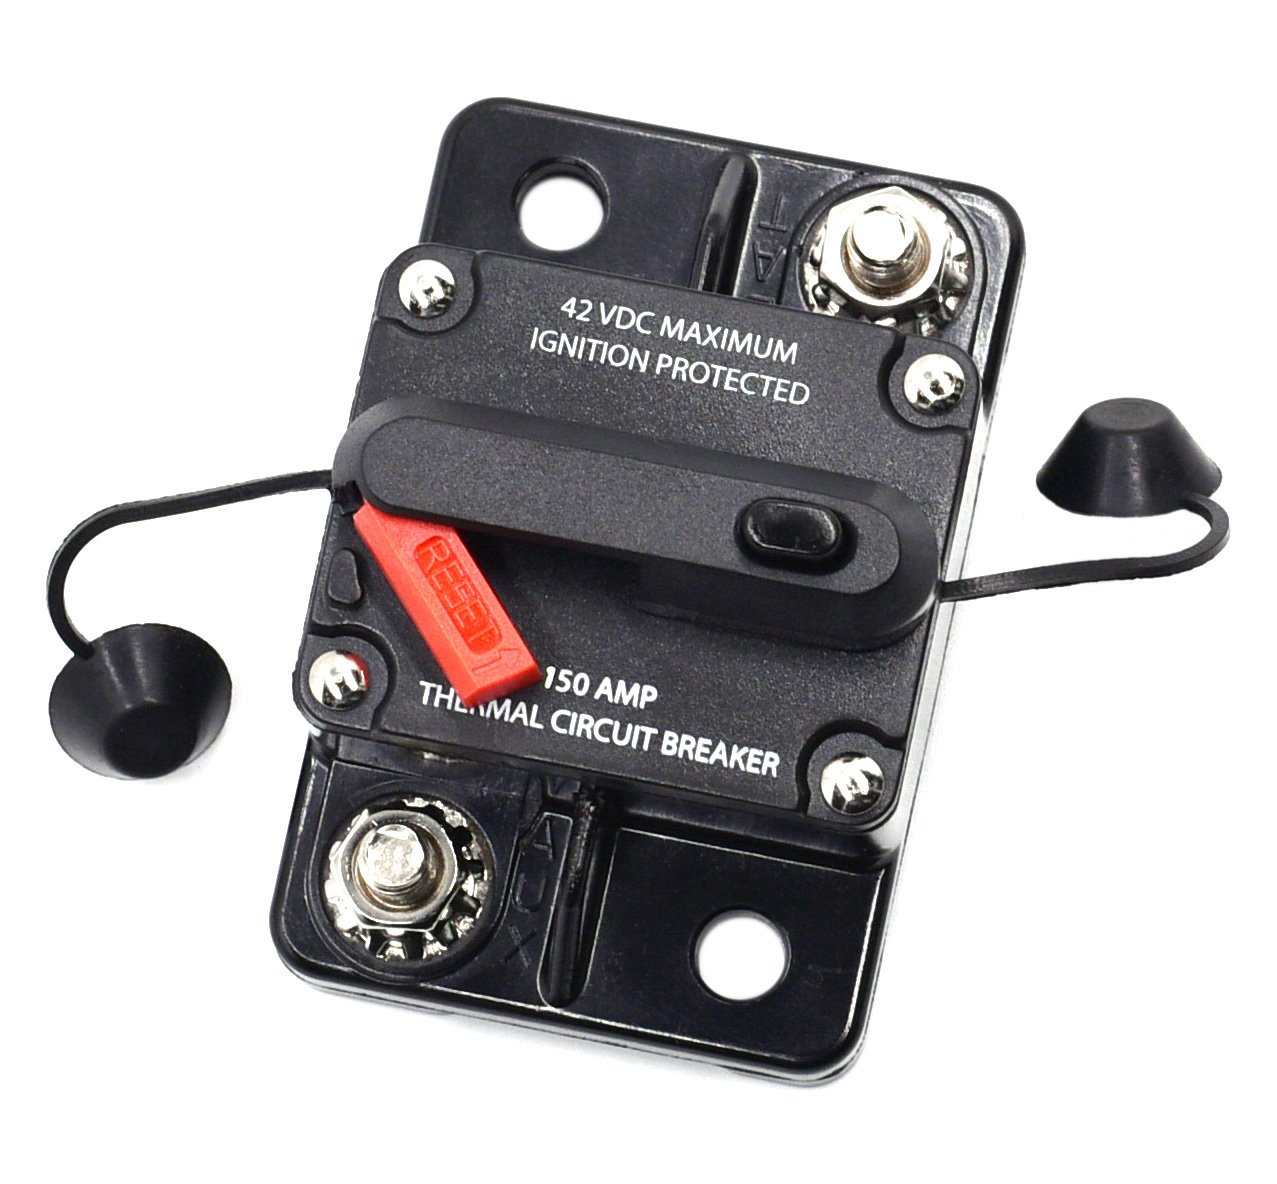 Cllena 80 Amp Circuit Breaker for Car Truck Rv ATV Marine Boat Vehicles / electronic systems